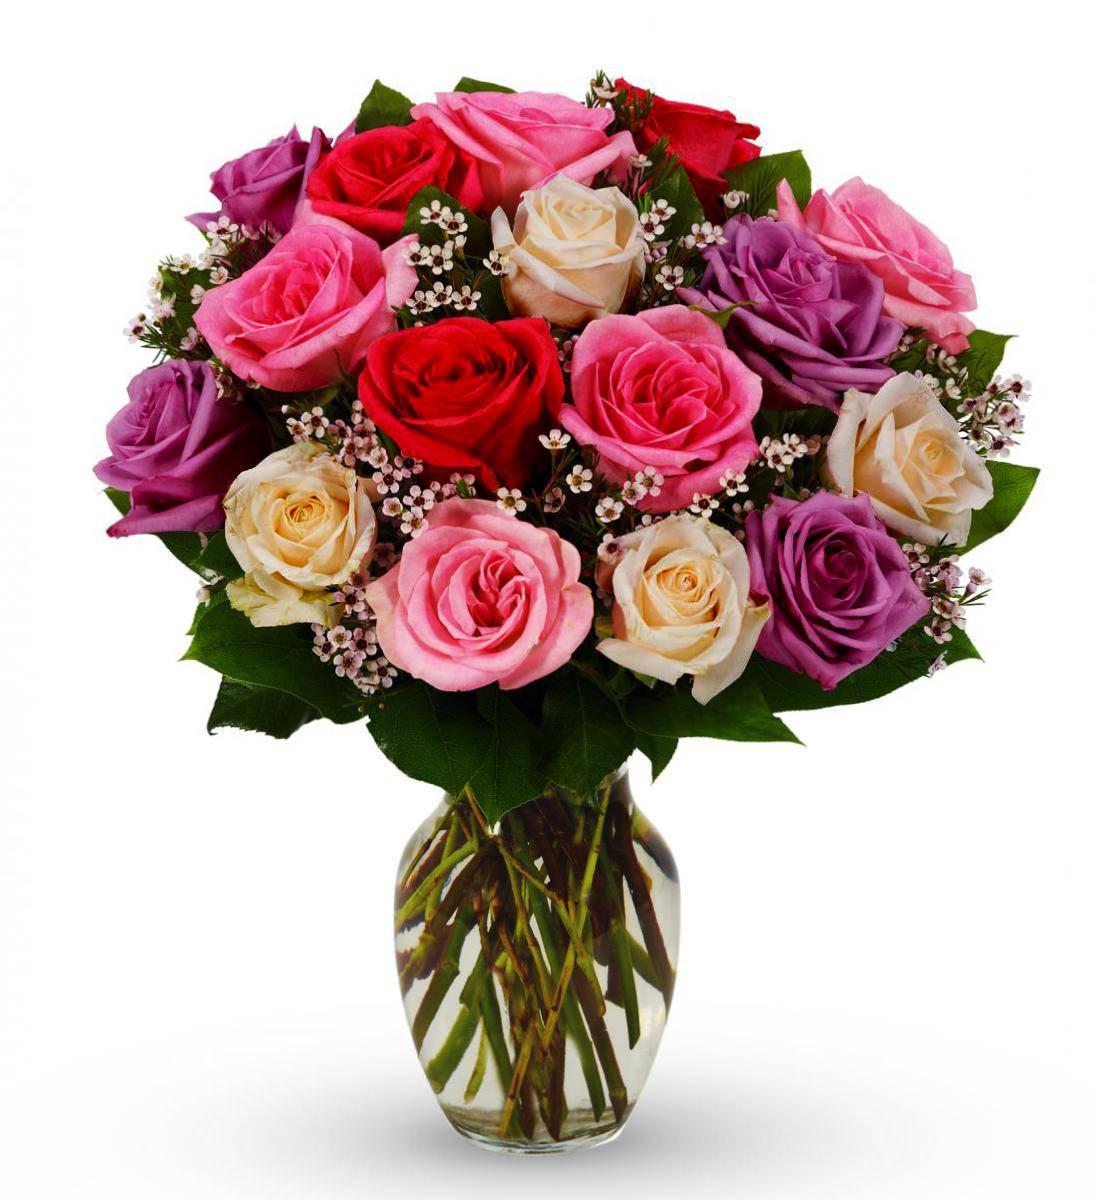 Average Cost Of Wedding Flowers Bay Area : Flowers blooming rose the best ideas